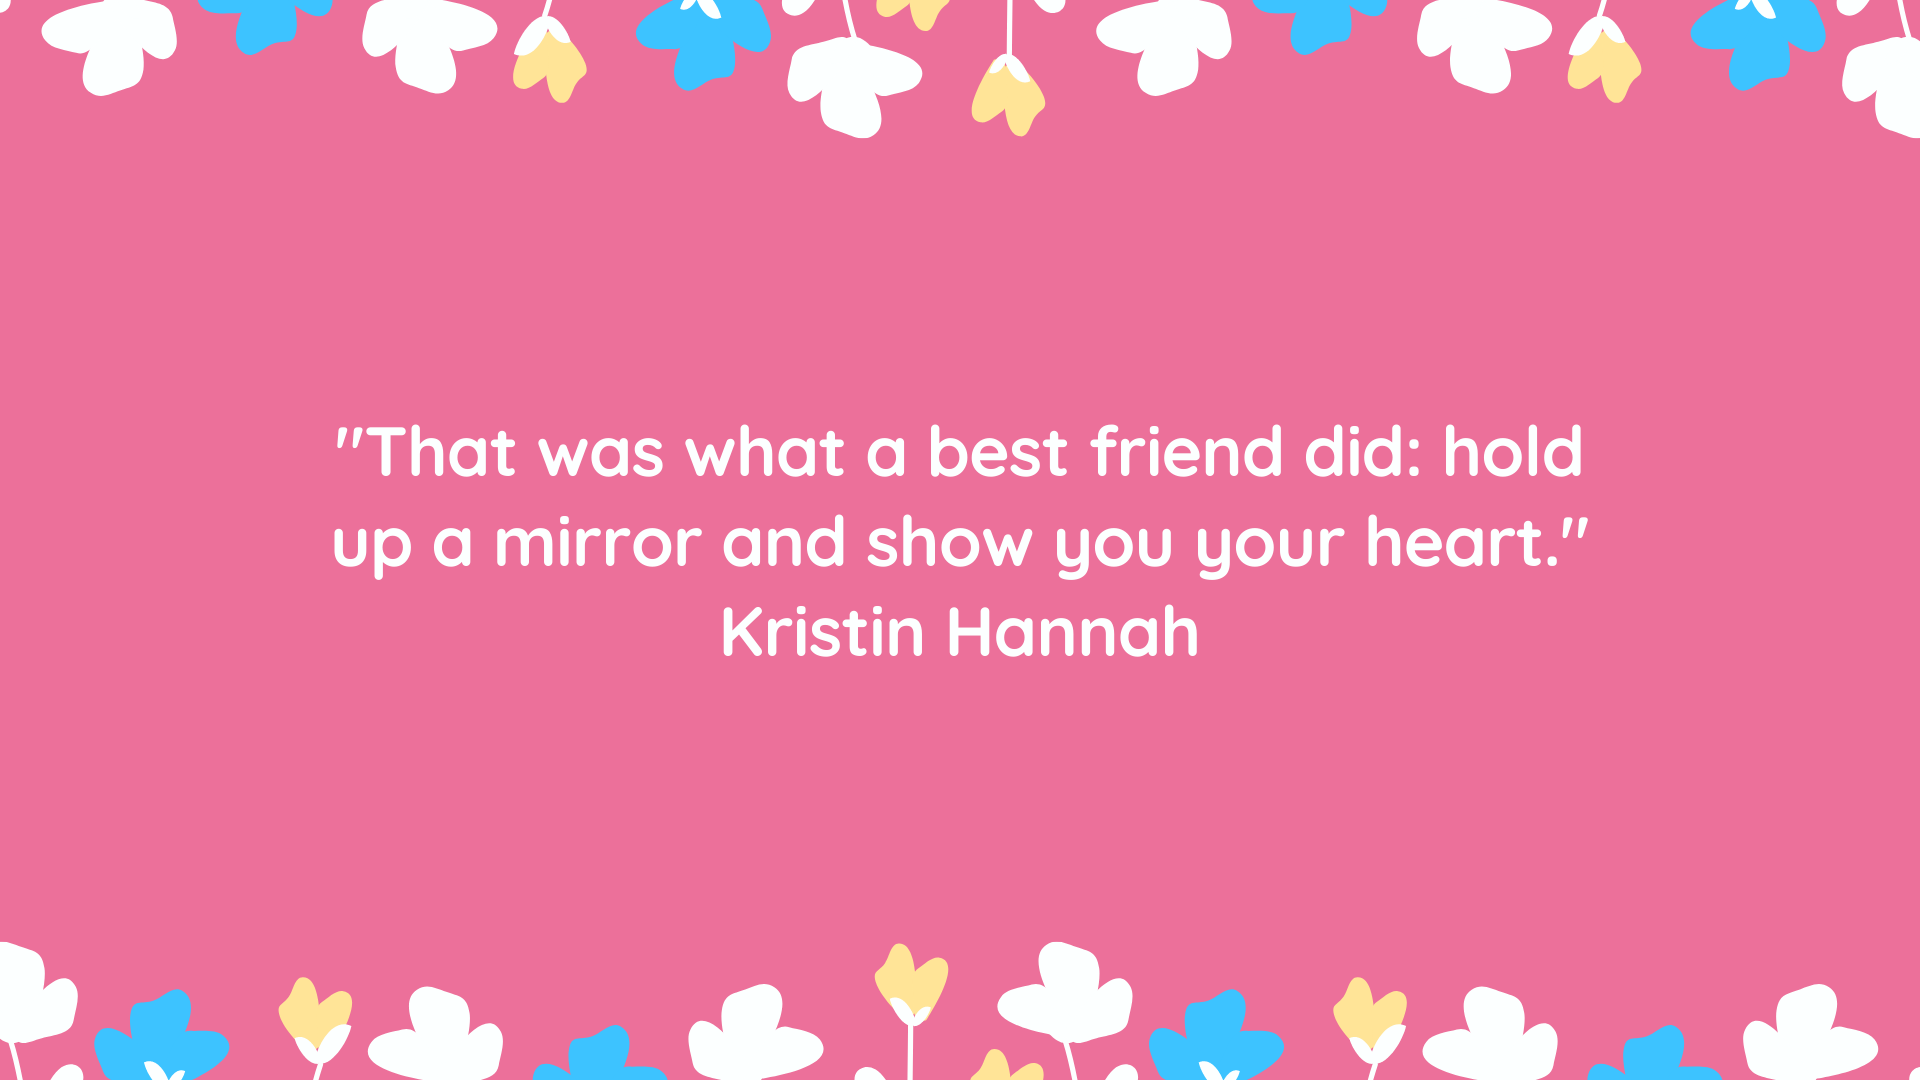 """That was what a best friend did: hold up a mirror and show you your heart."" Kristin Hannah"